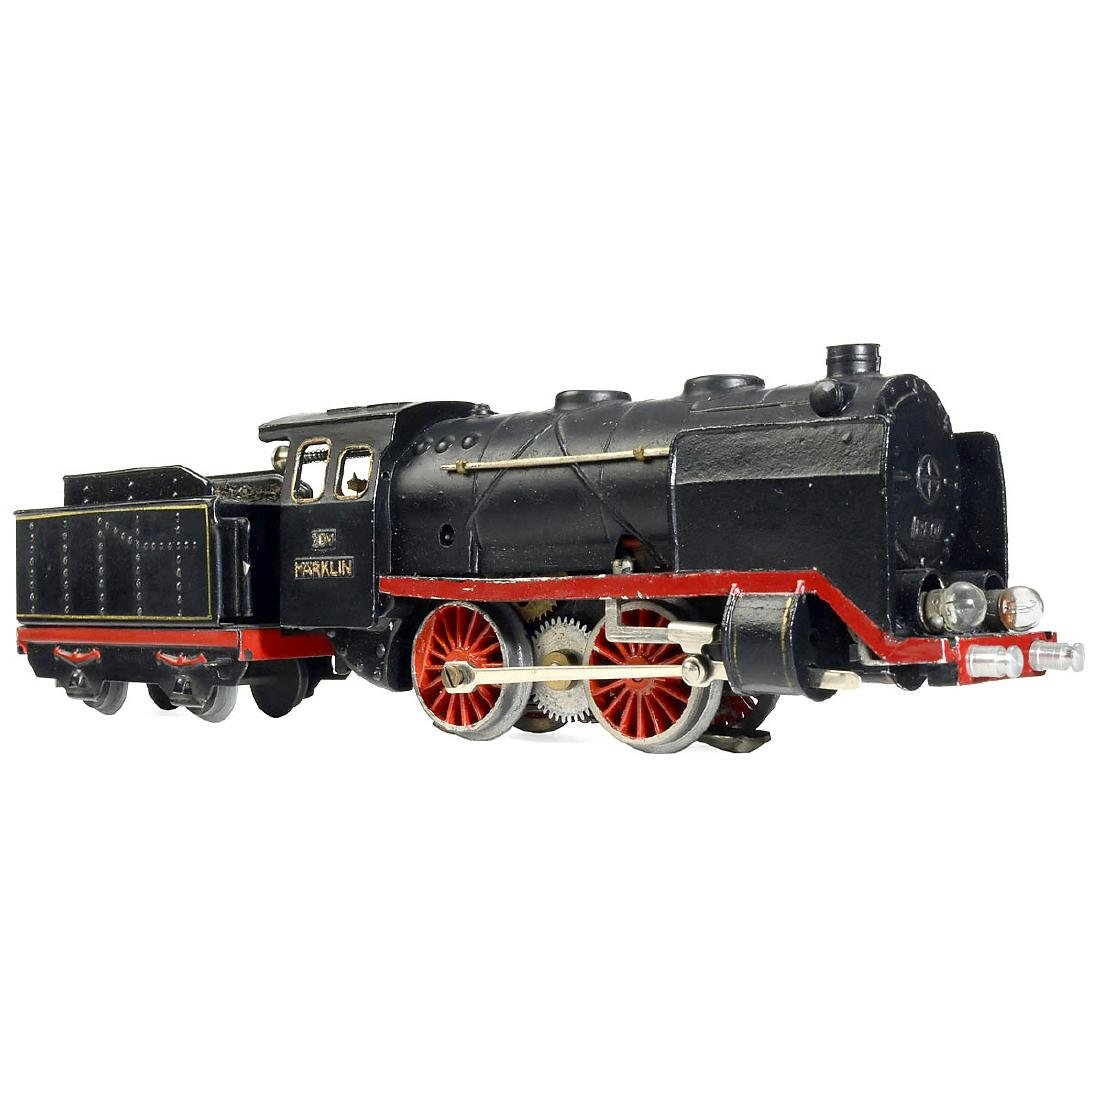 Märklin R 800 Steam Locomotive, c. 1940